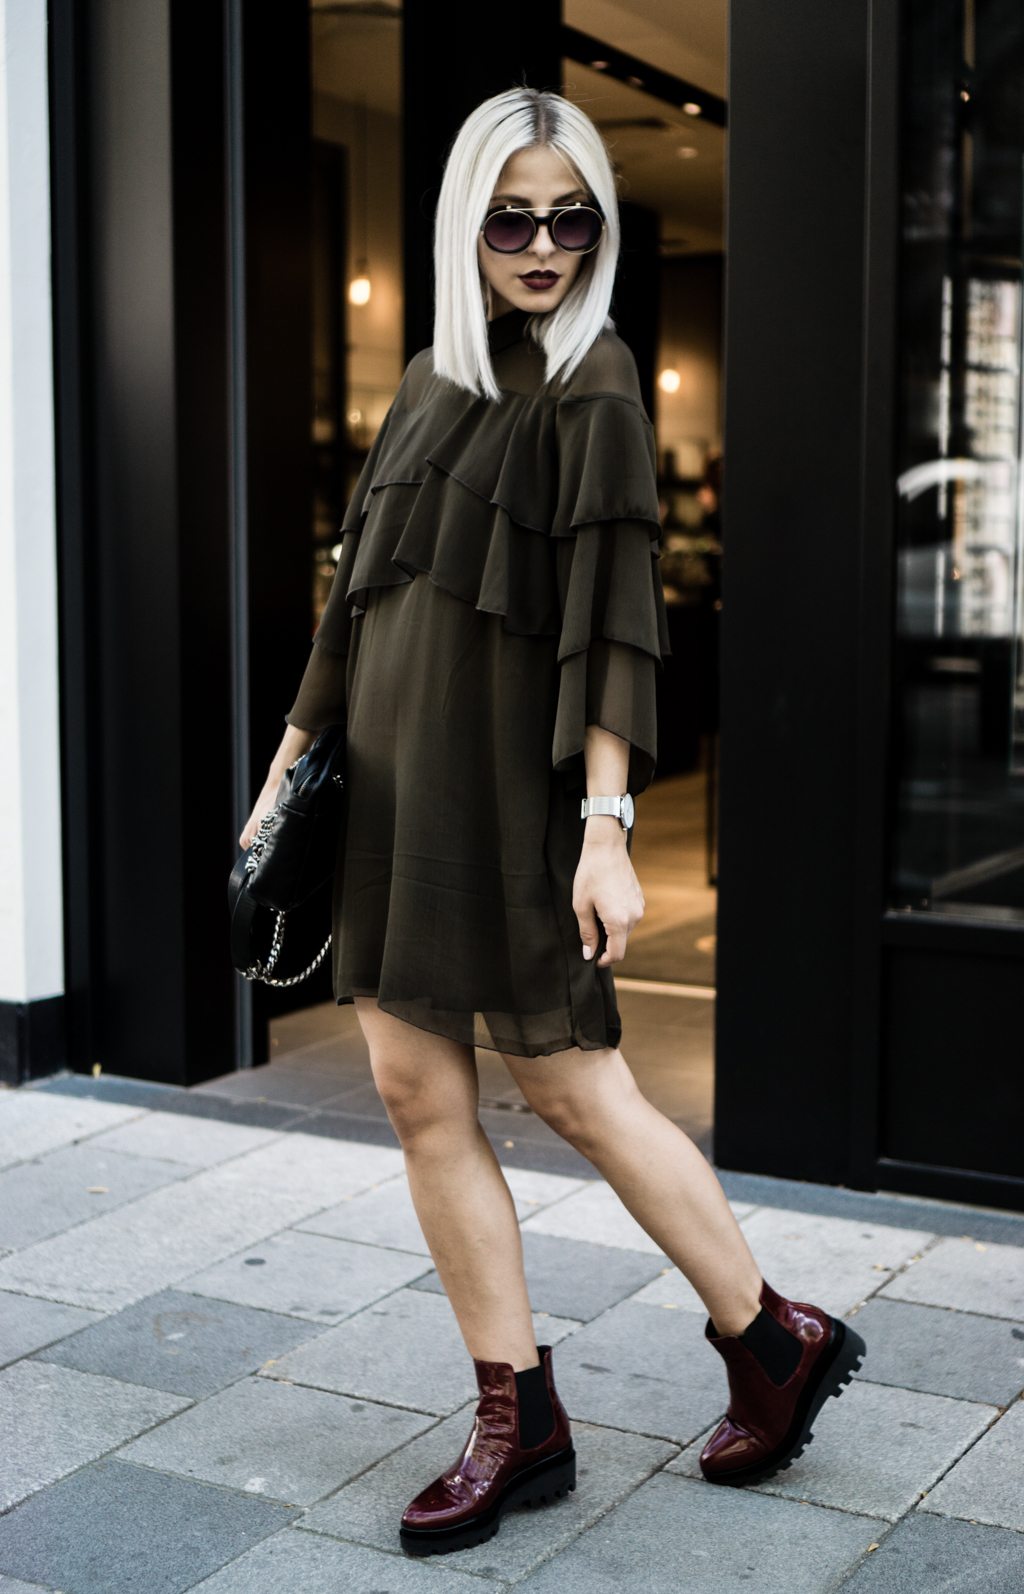 How to Combine Frilled Dress and Chunky Platform Boots